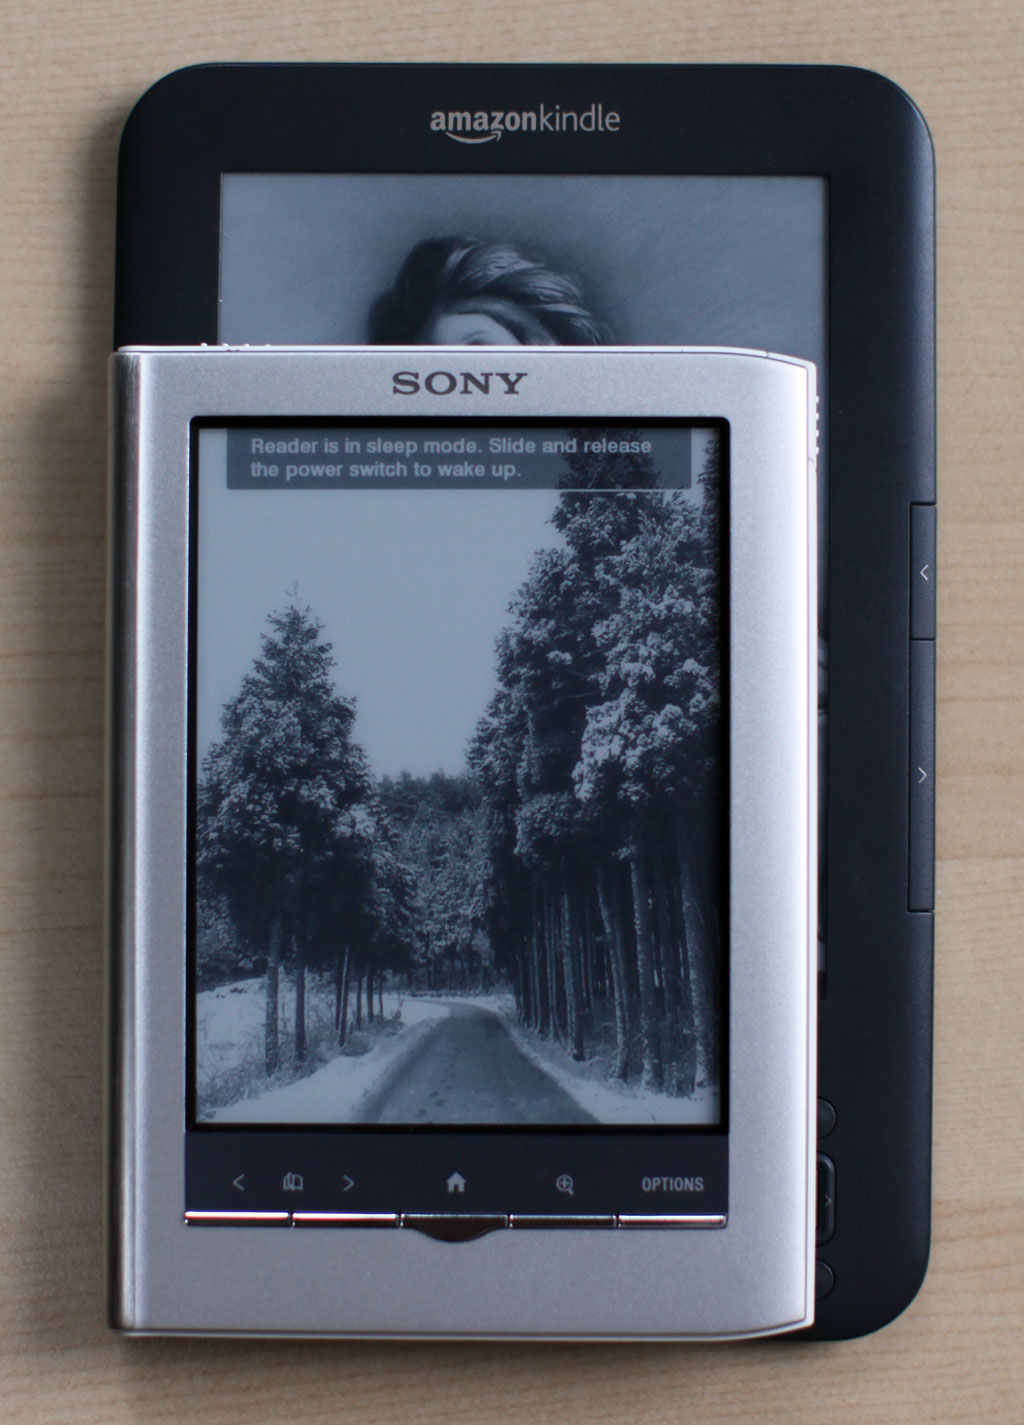 Kindle vs Sony PRS350 size comparison